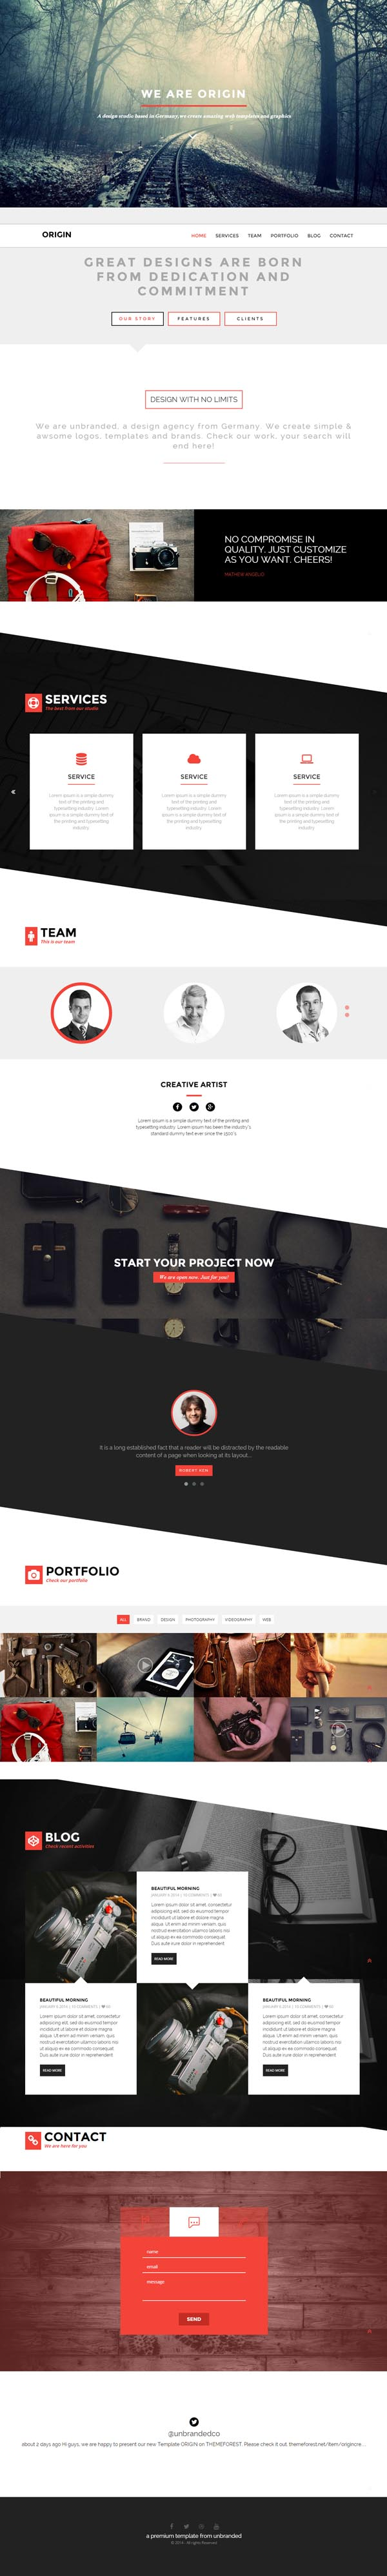 Origin-Creative One page HTML5 Template